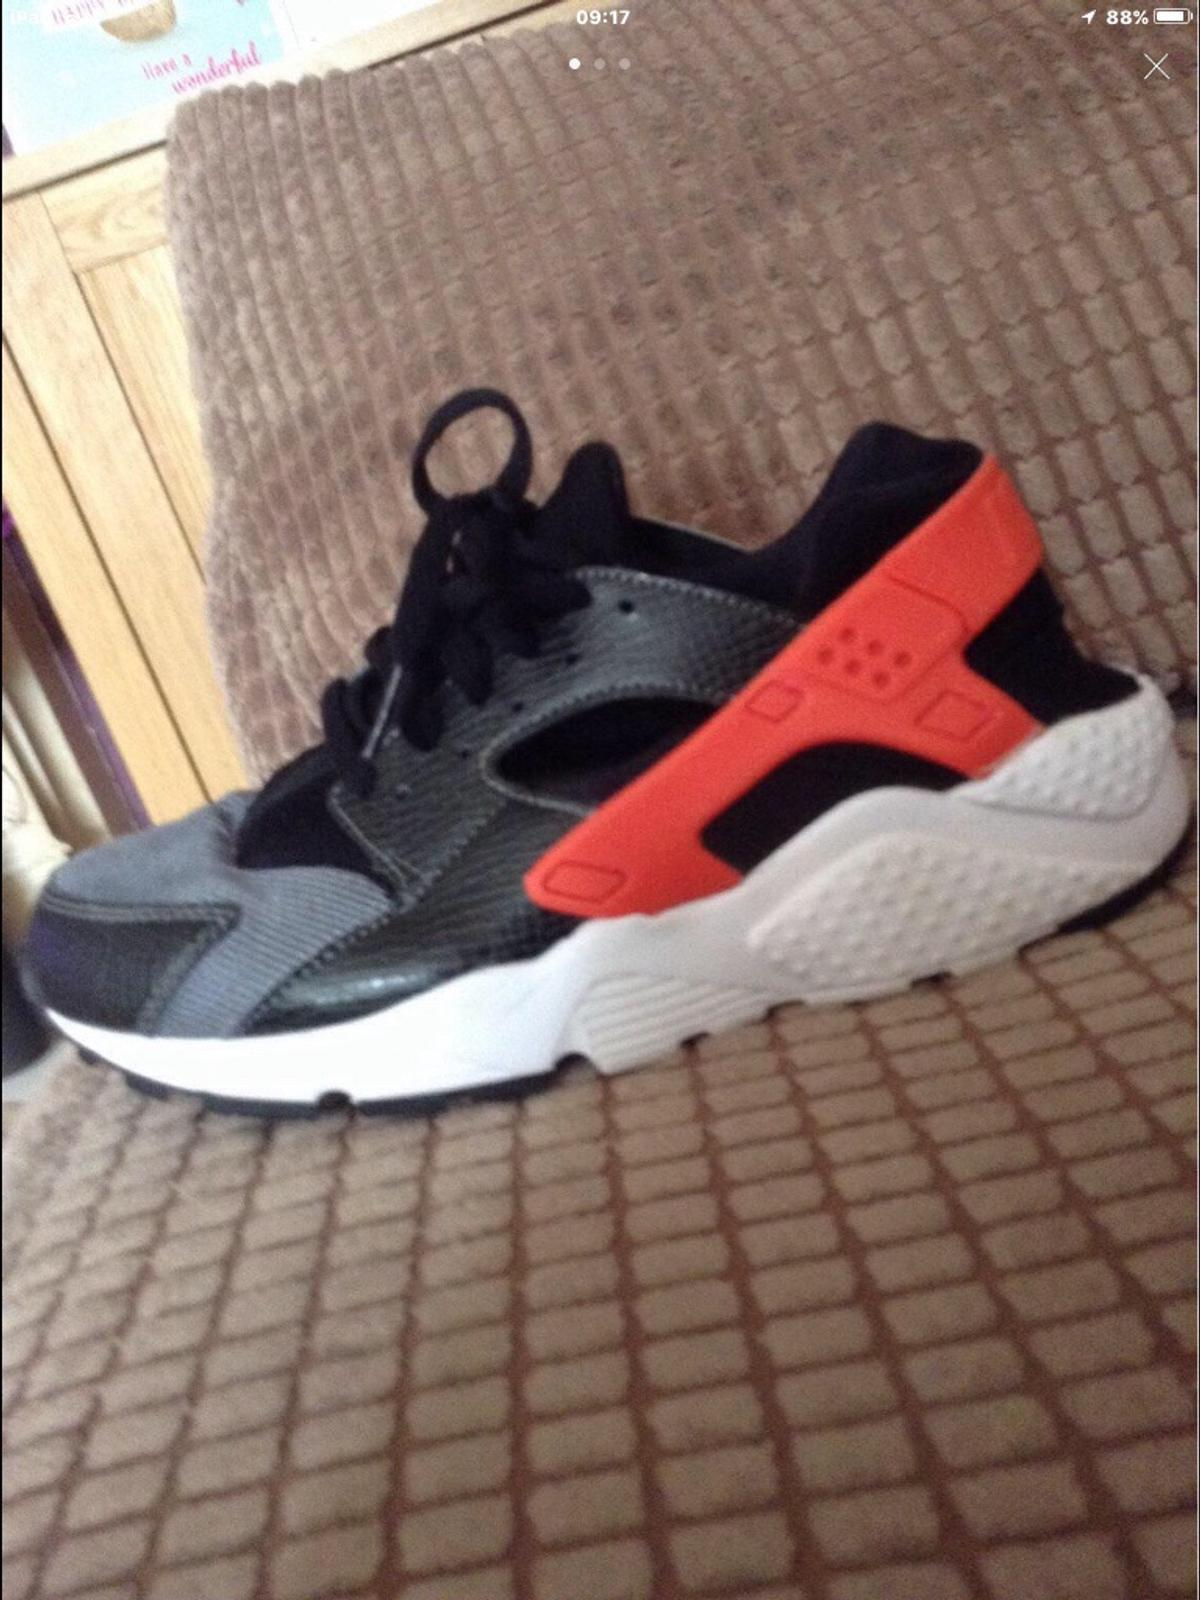 b6f4e2c7ff89 Trainers(Nike huaraches and primark ) in DN35 Cleethorpes for £5.00 ...